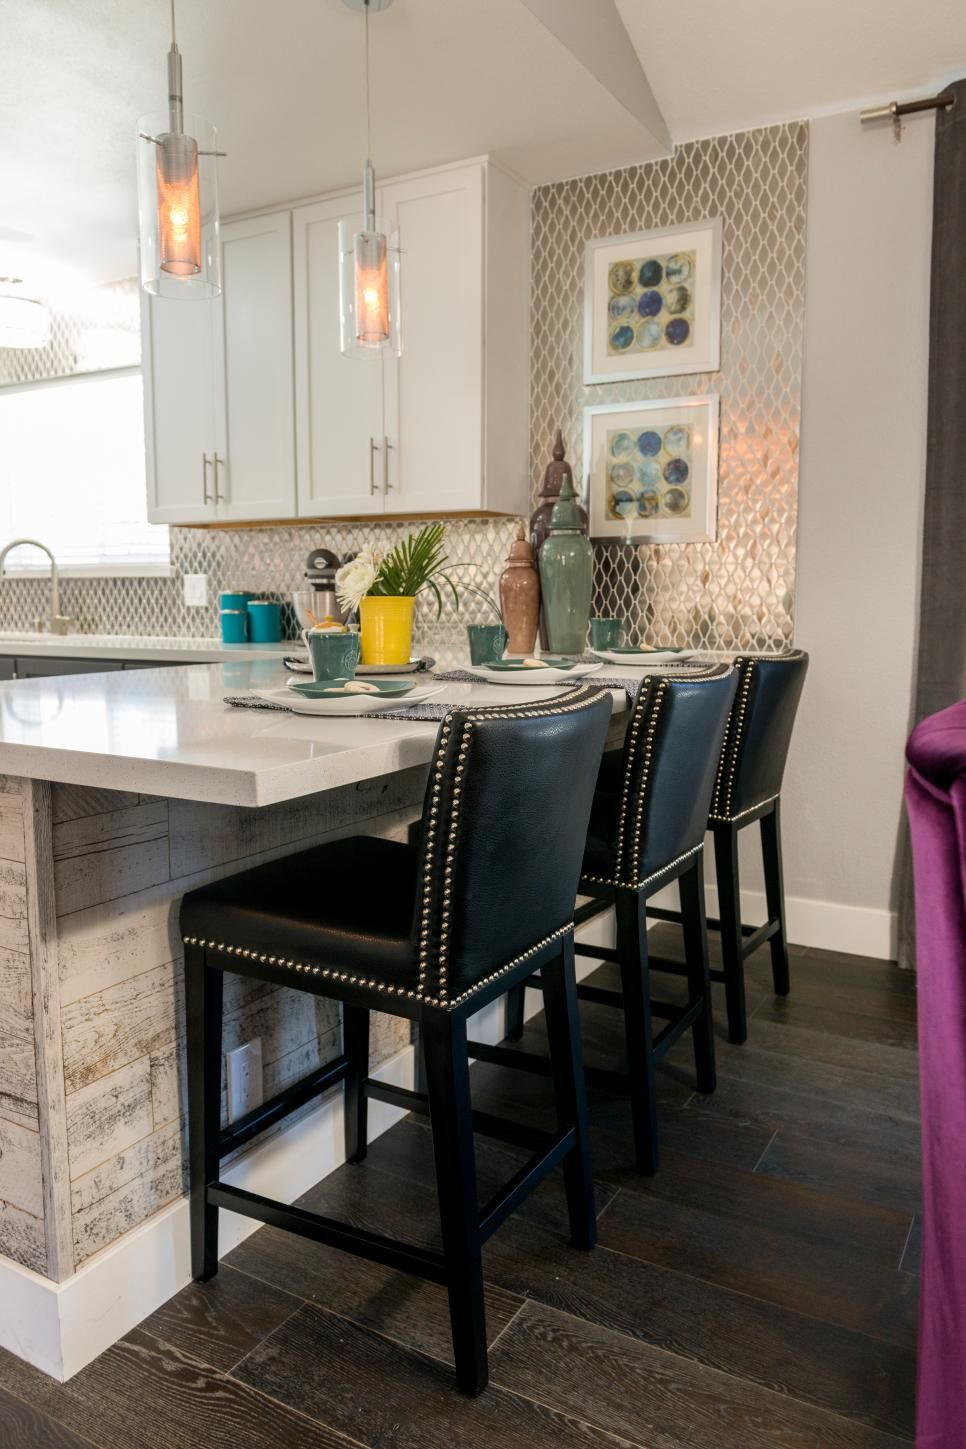 Before And After Kitchens From Drew And Jonathan Scott Brother Vs